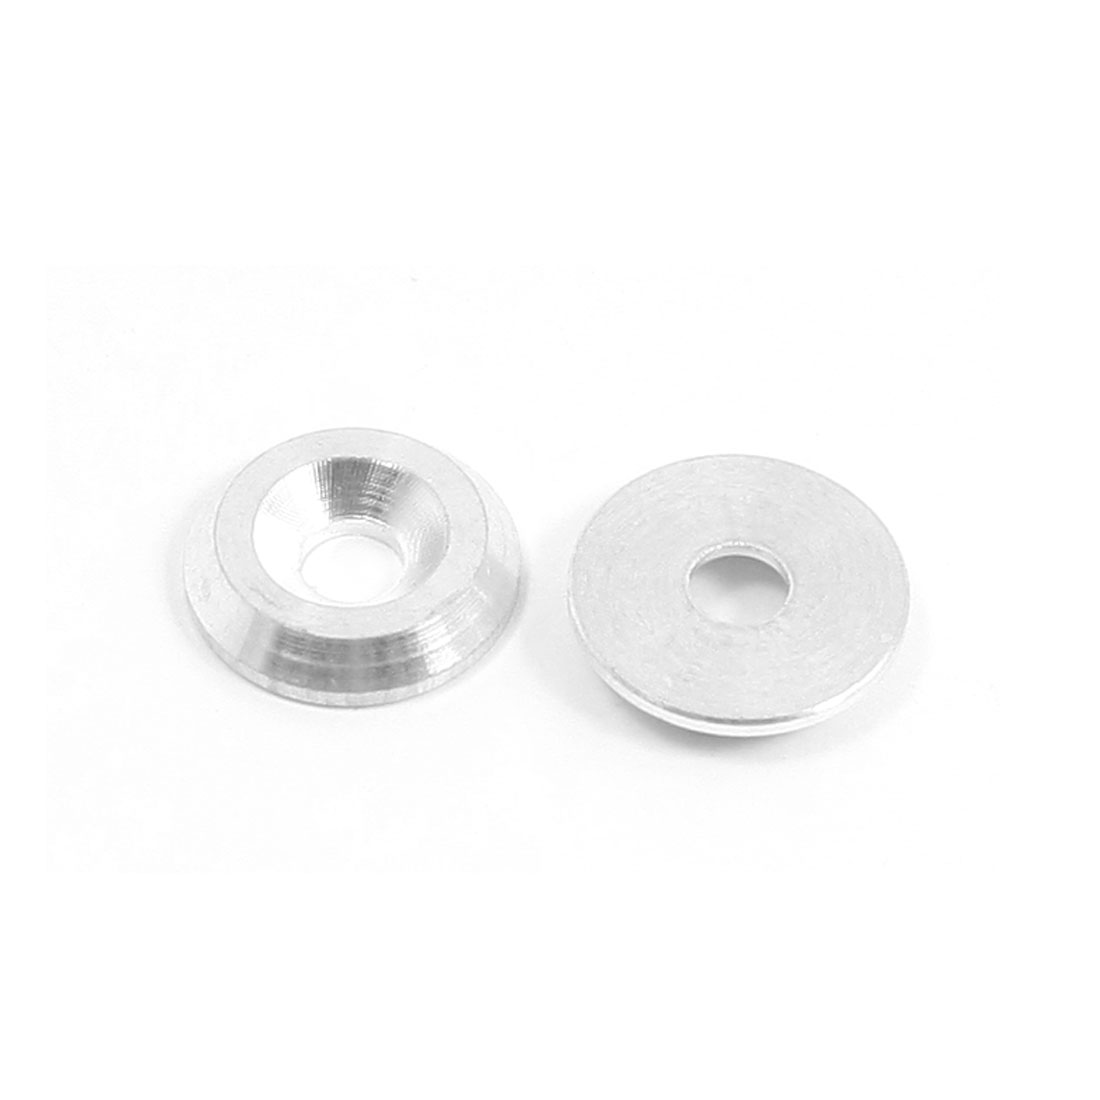 2Pcs Replacement Silver Tone Aluminium Alloy Countersink Washer Spacer Adaptor 4mm x 14mm x 3mm for RC Model Toy